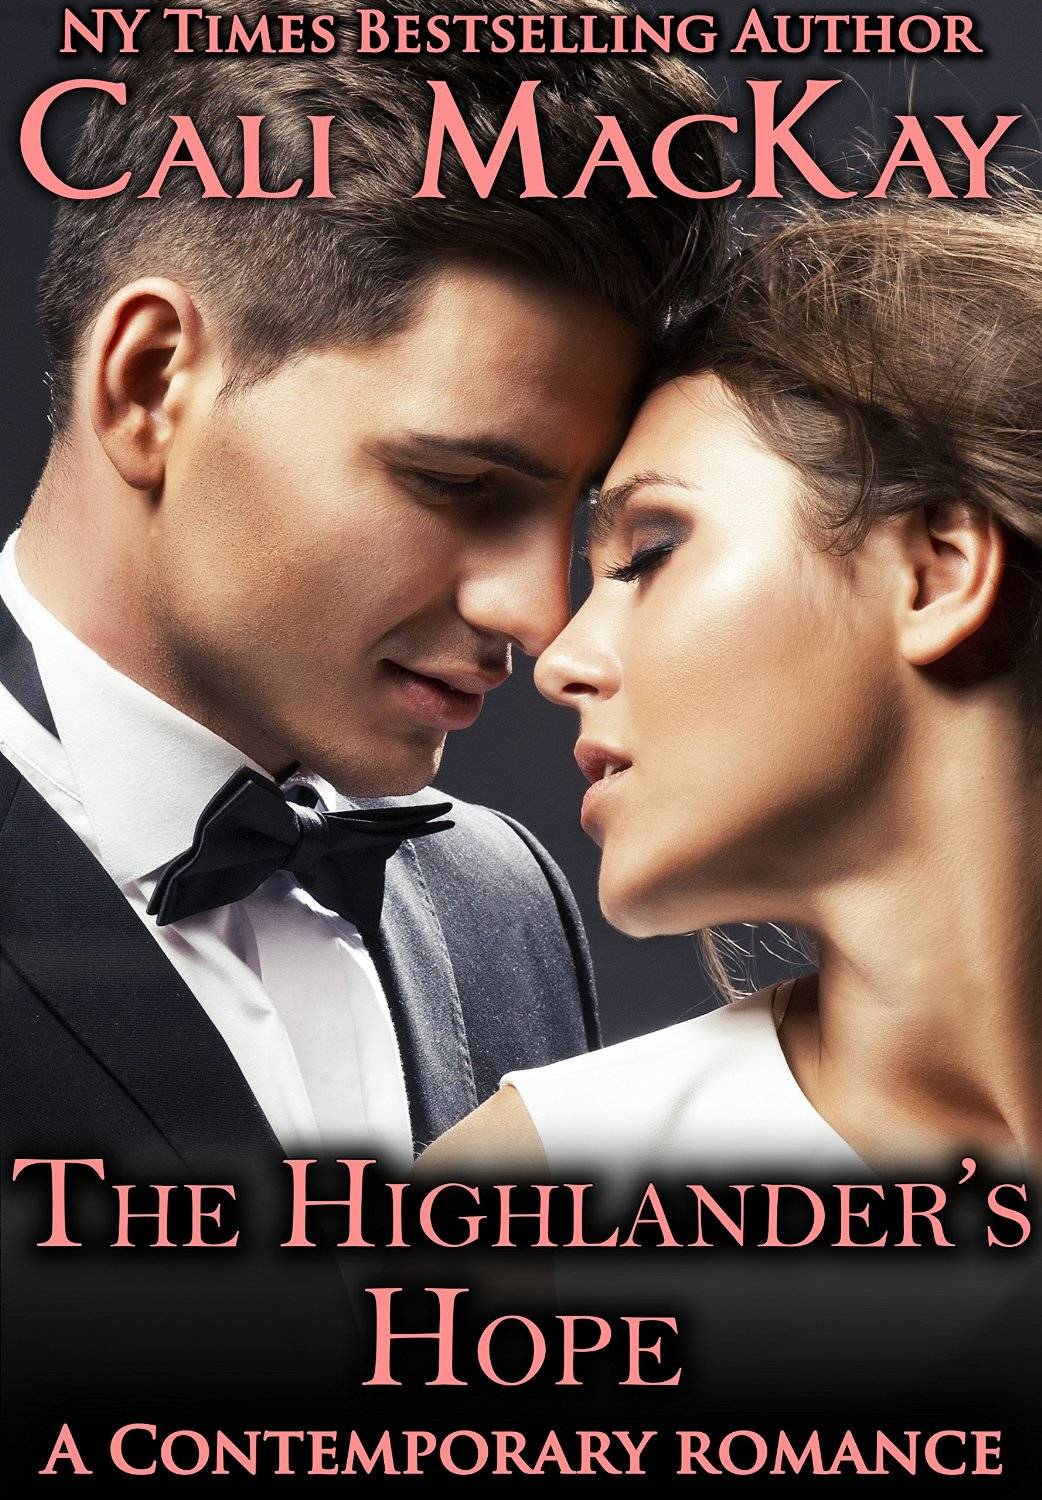 The Highlander's Hope by Cali MacKay